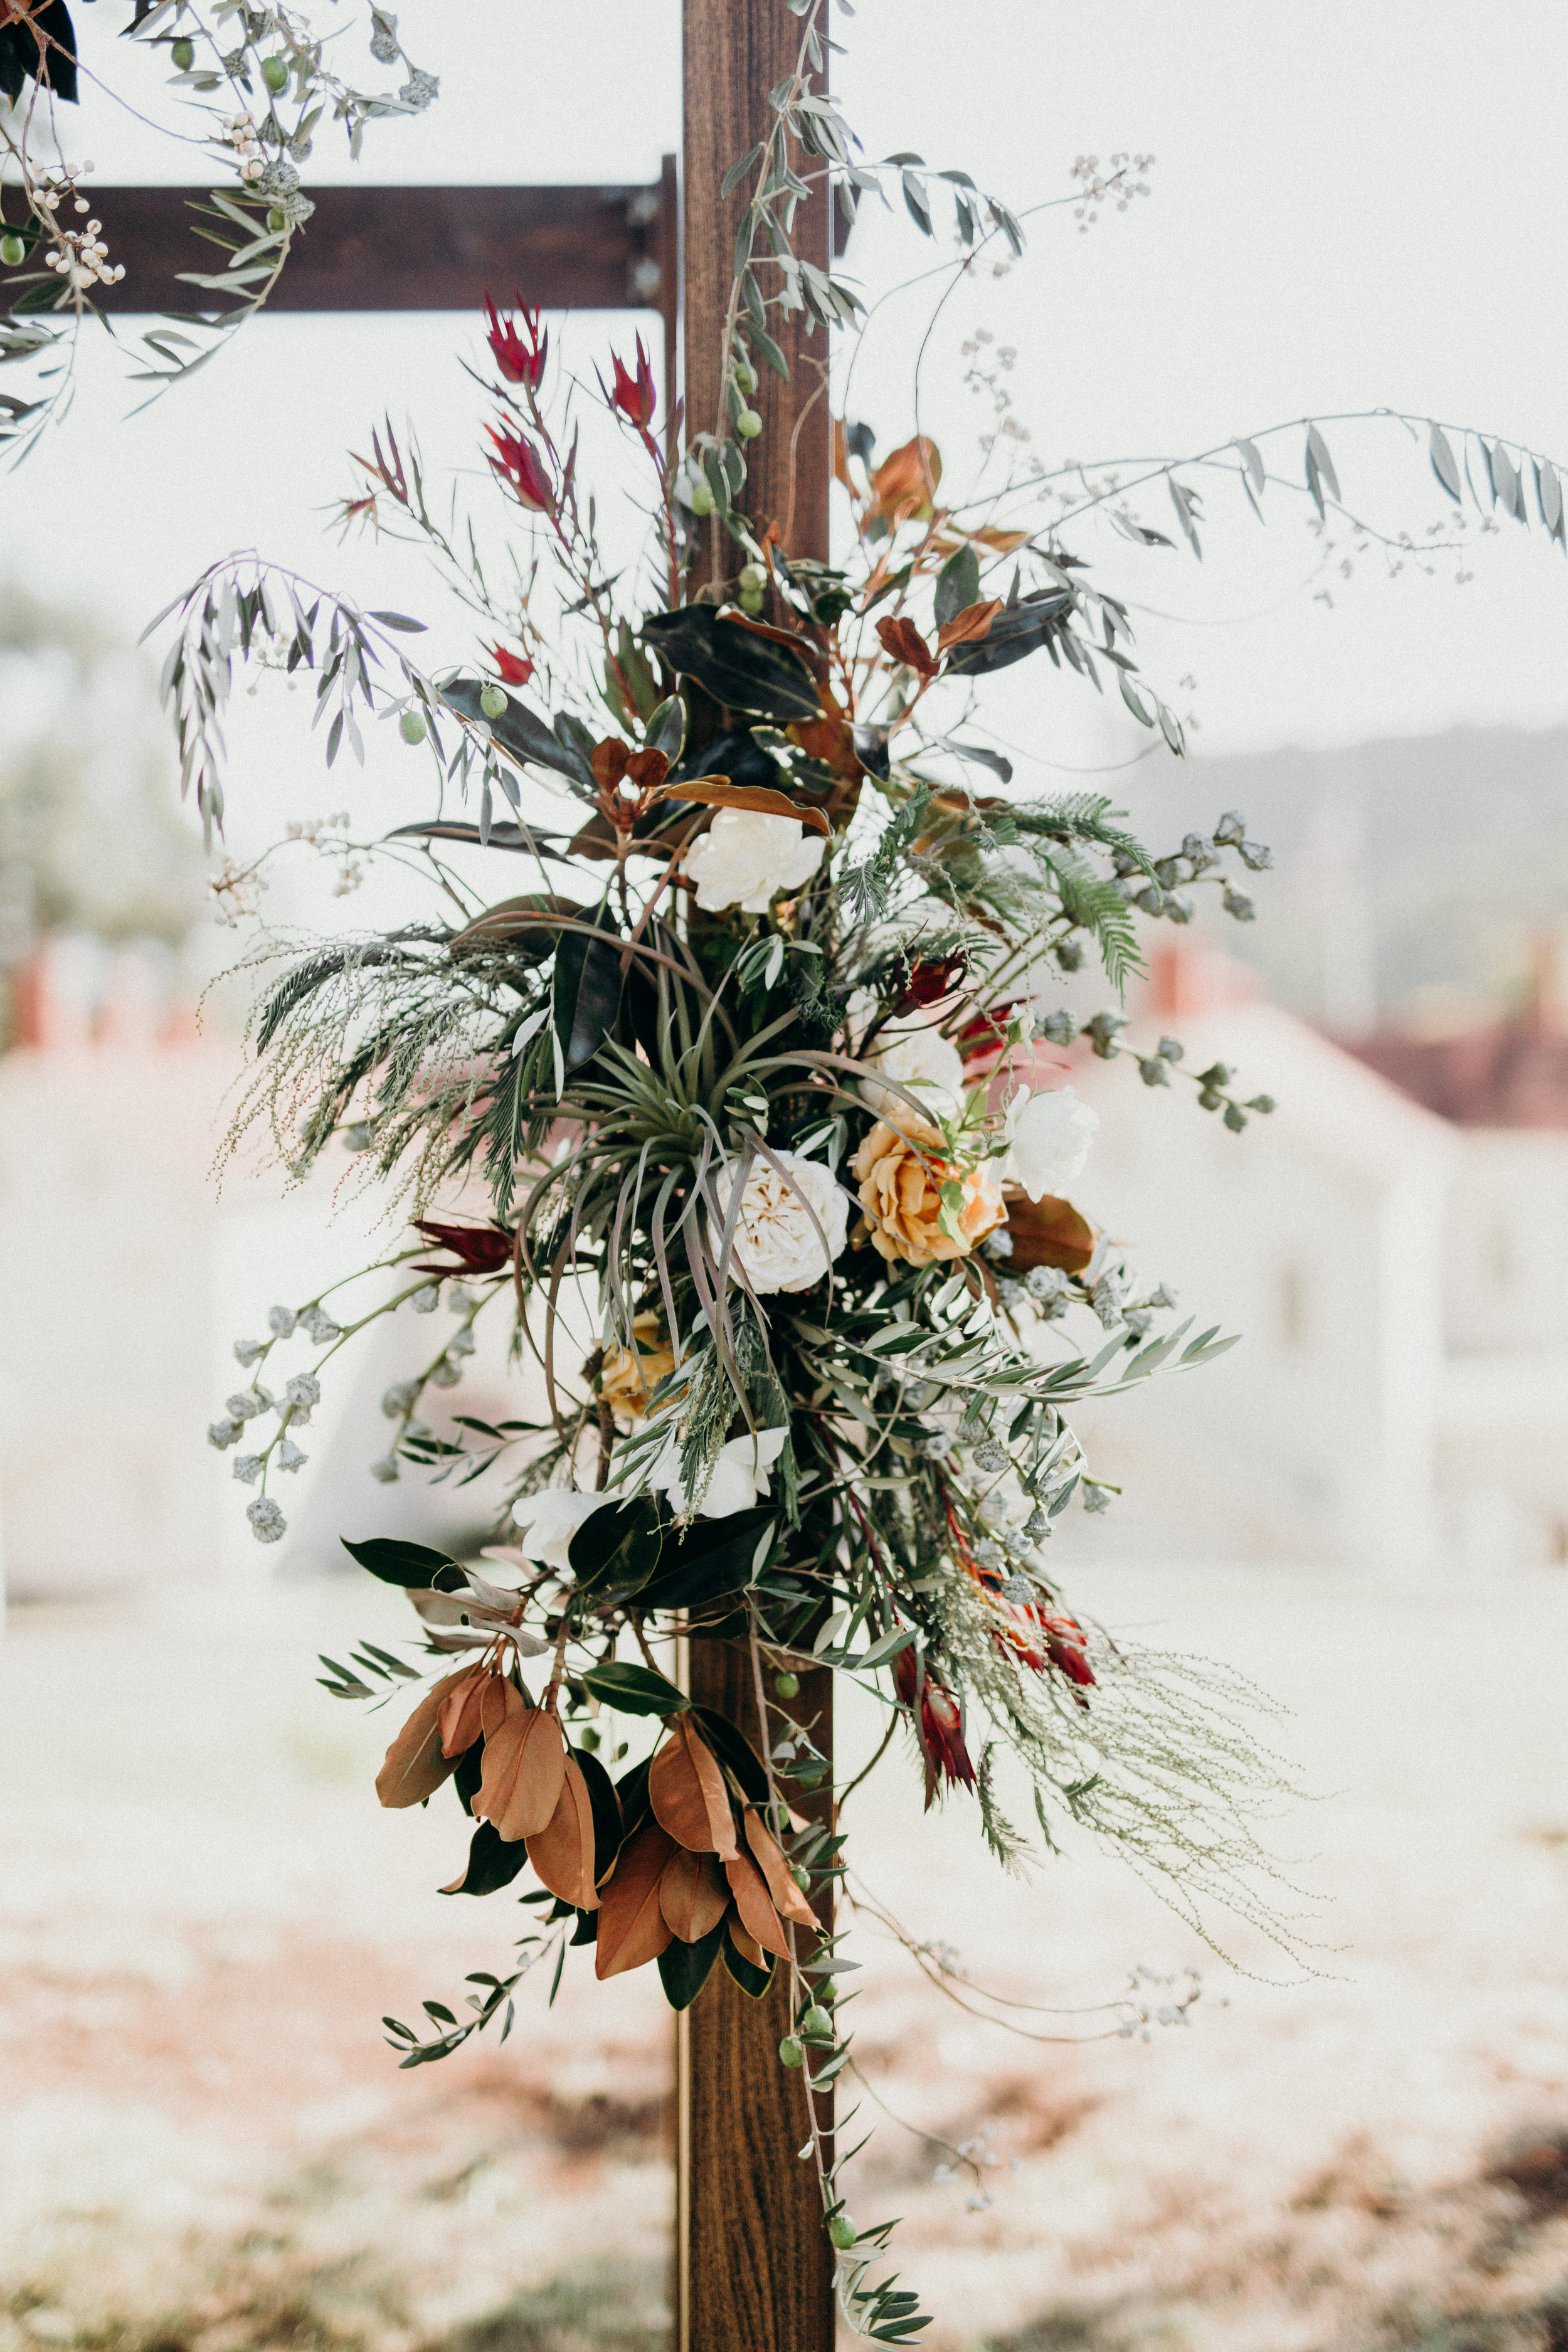 Garden inspired ceremony backdrop on wood with magnolia, olive, tillandsia and flowers by Venn Floral at Cavallo Point with Lally Events and Ryan Chard Smith Photography.